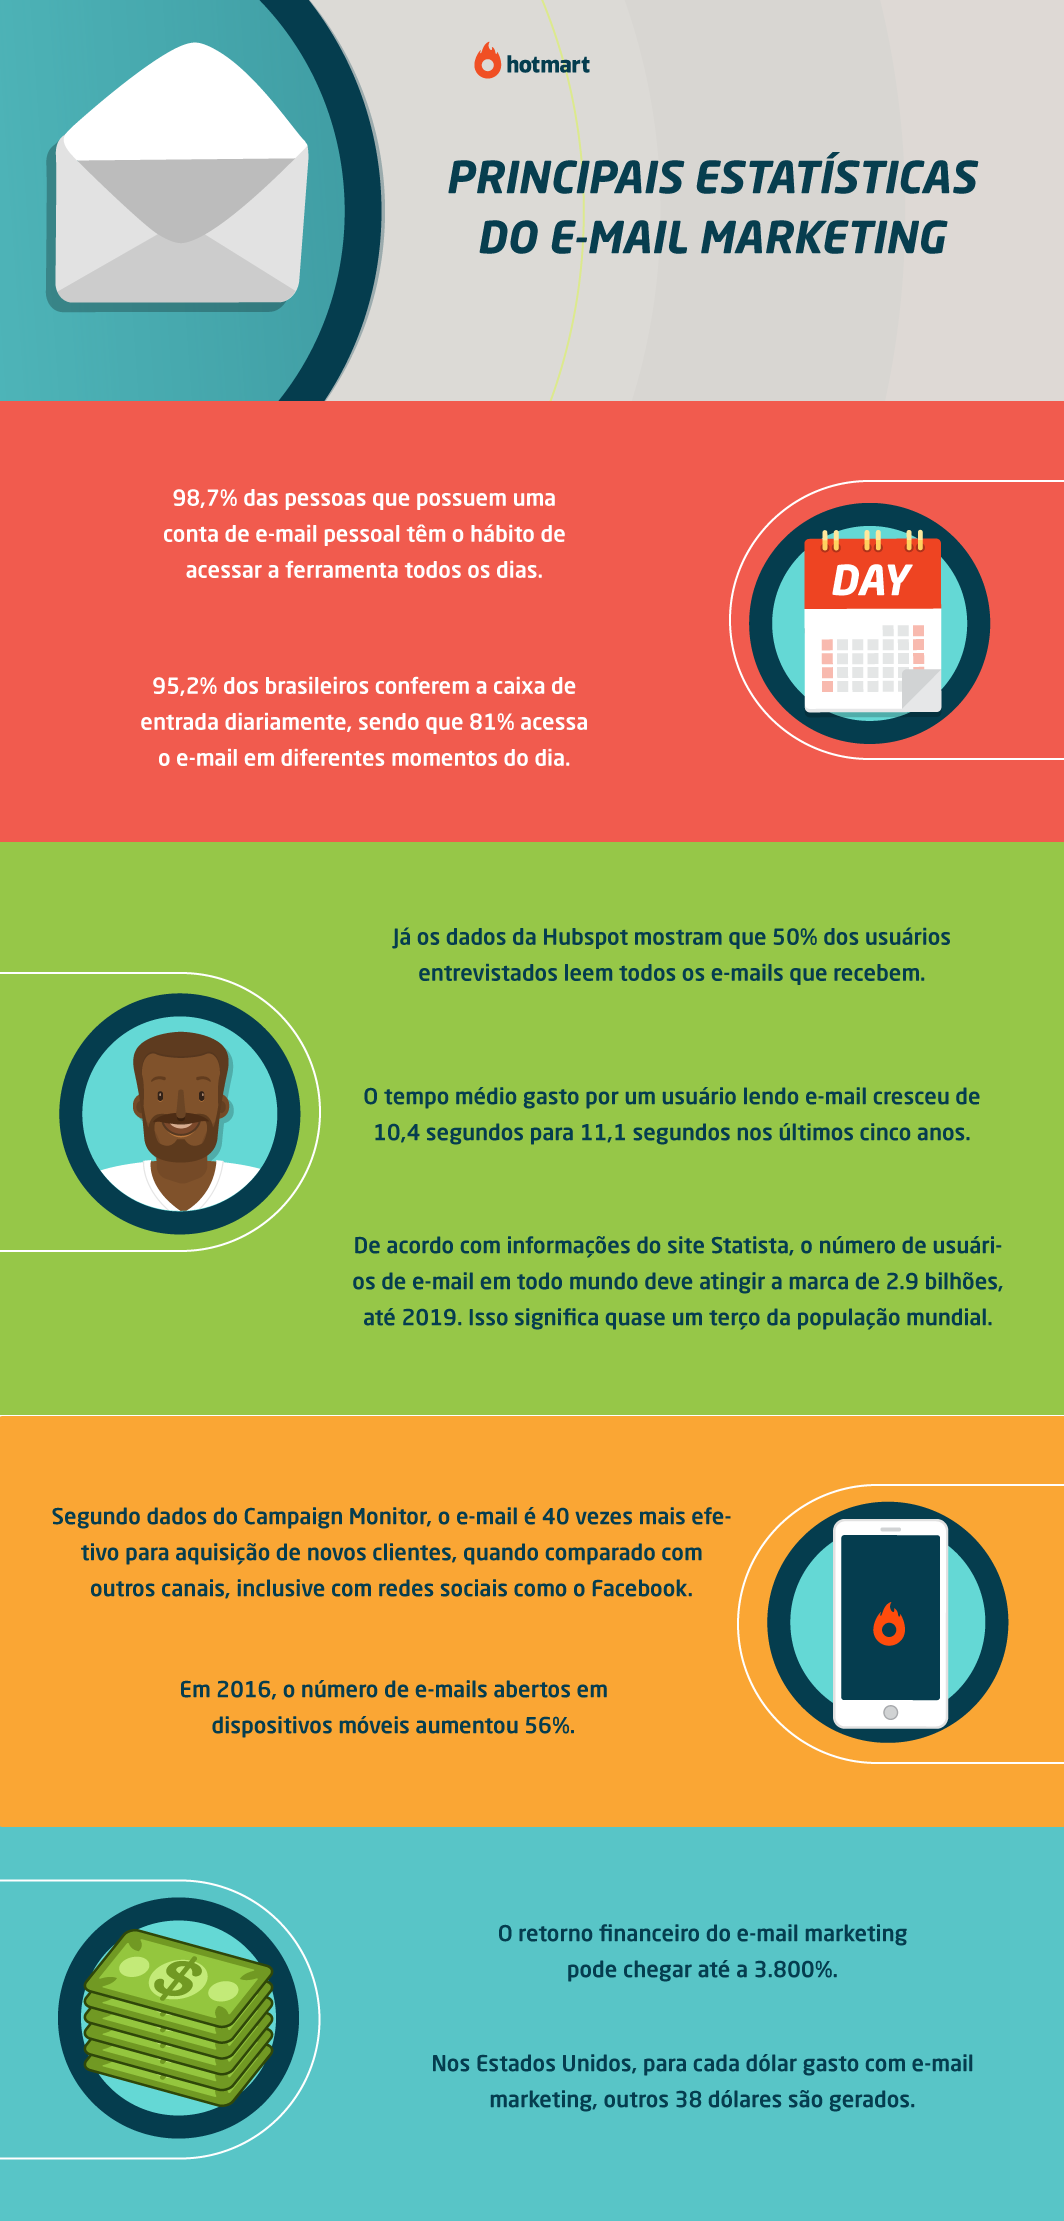 e-mail marketing - infográfico com estatísticas do e-mail marketing